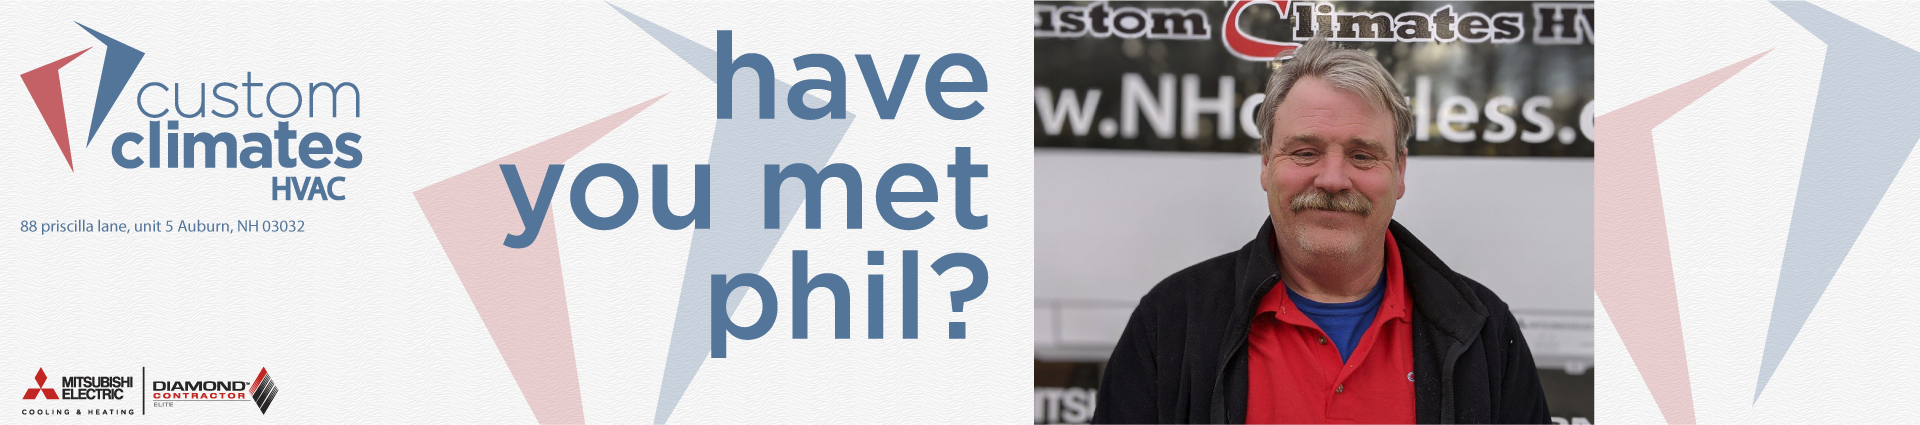 Have you met Phil? Banner